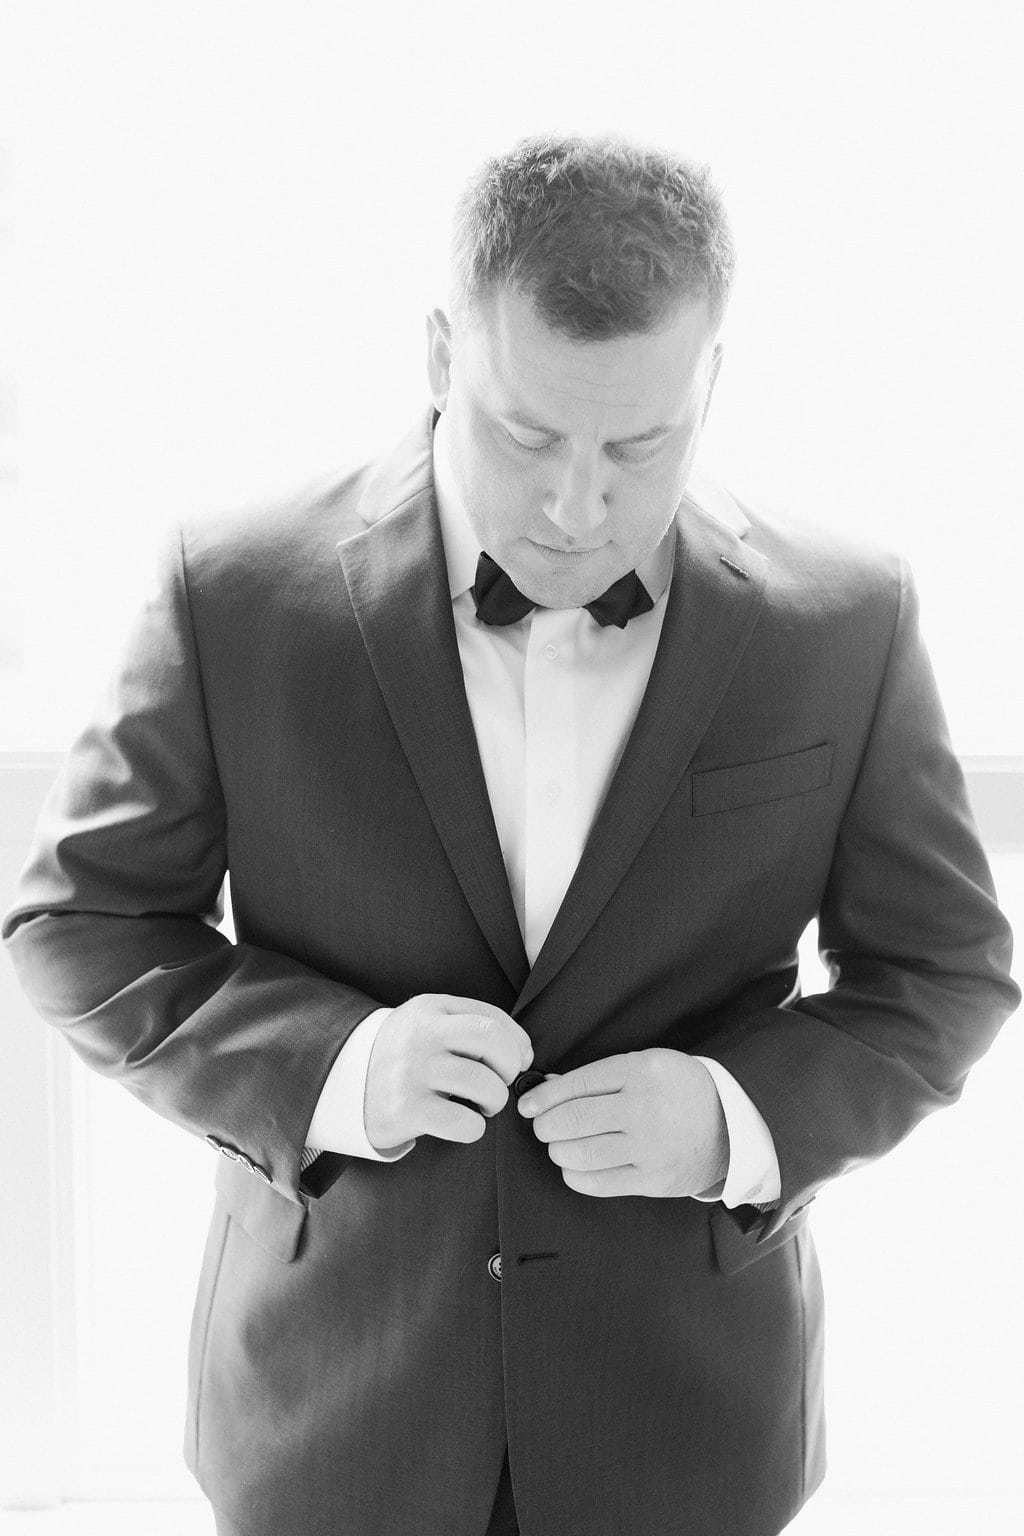 Groom buttoning up and getting dressed in his suit at the hotel